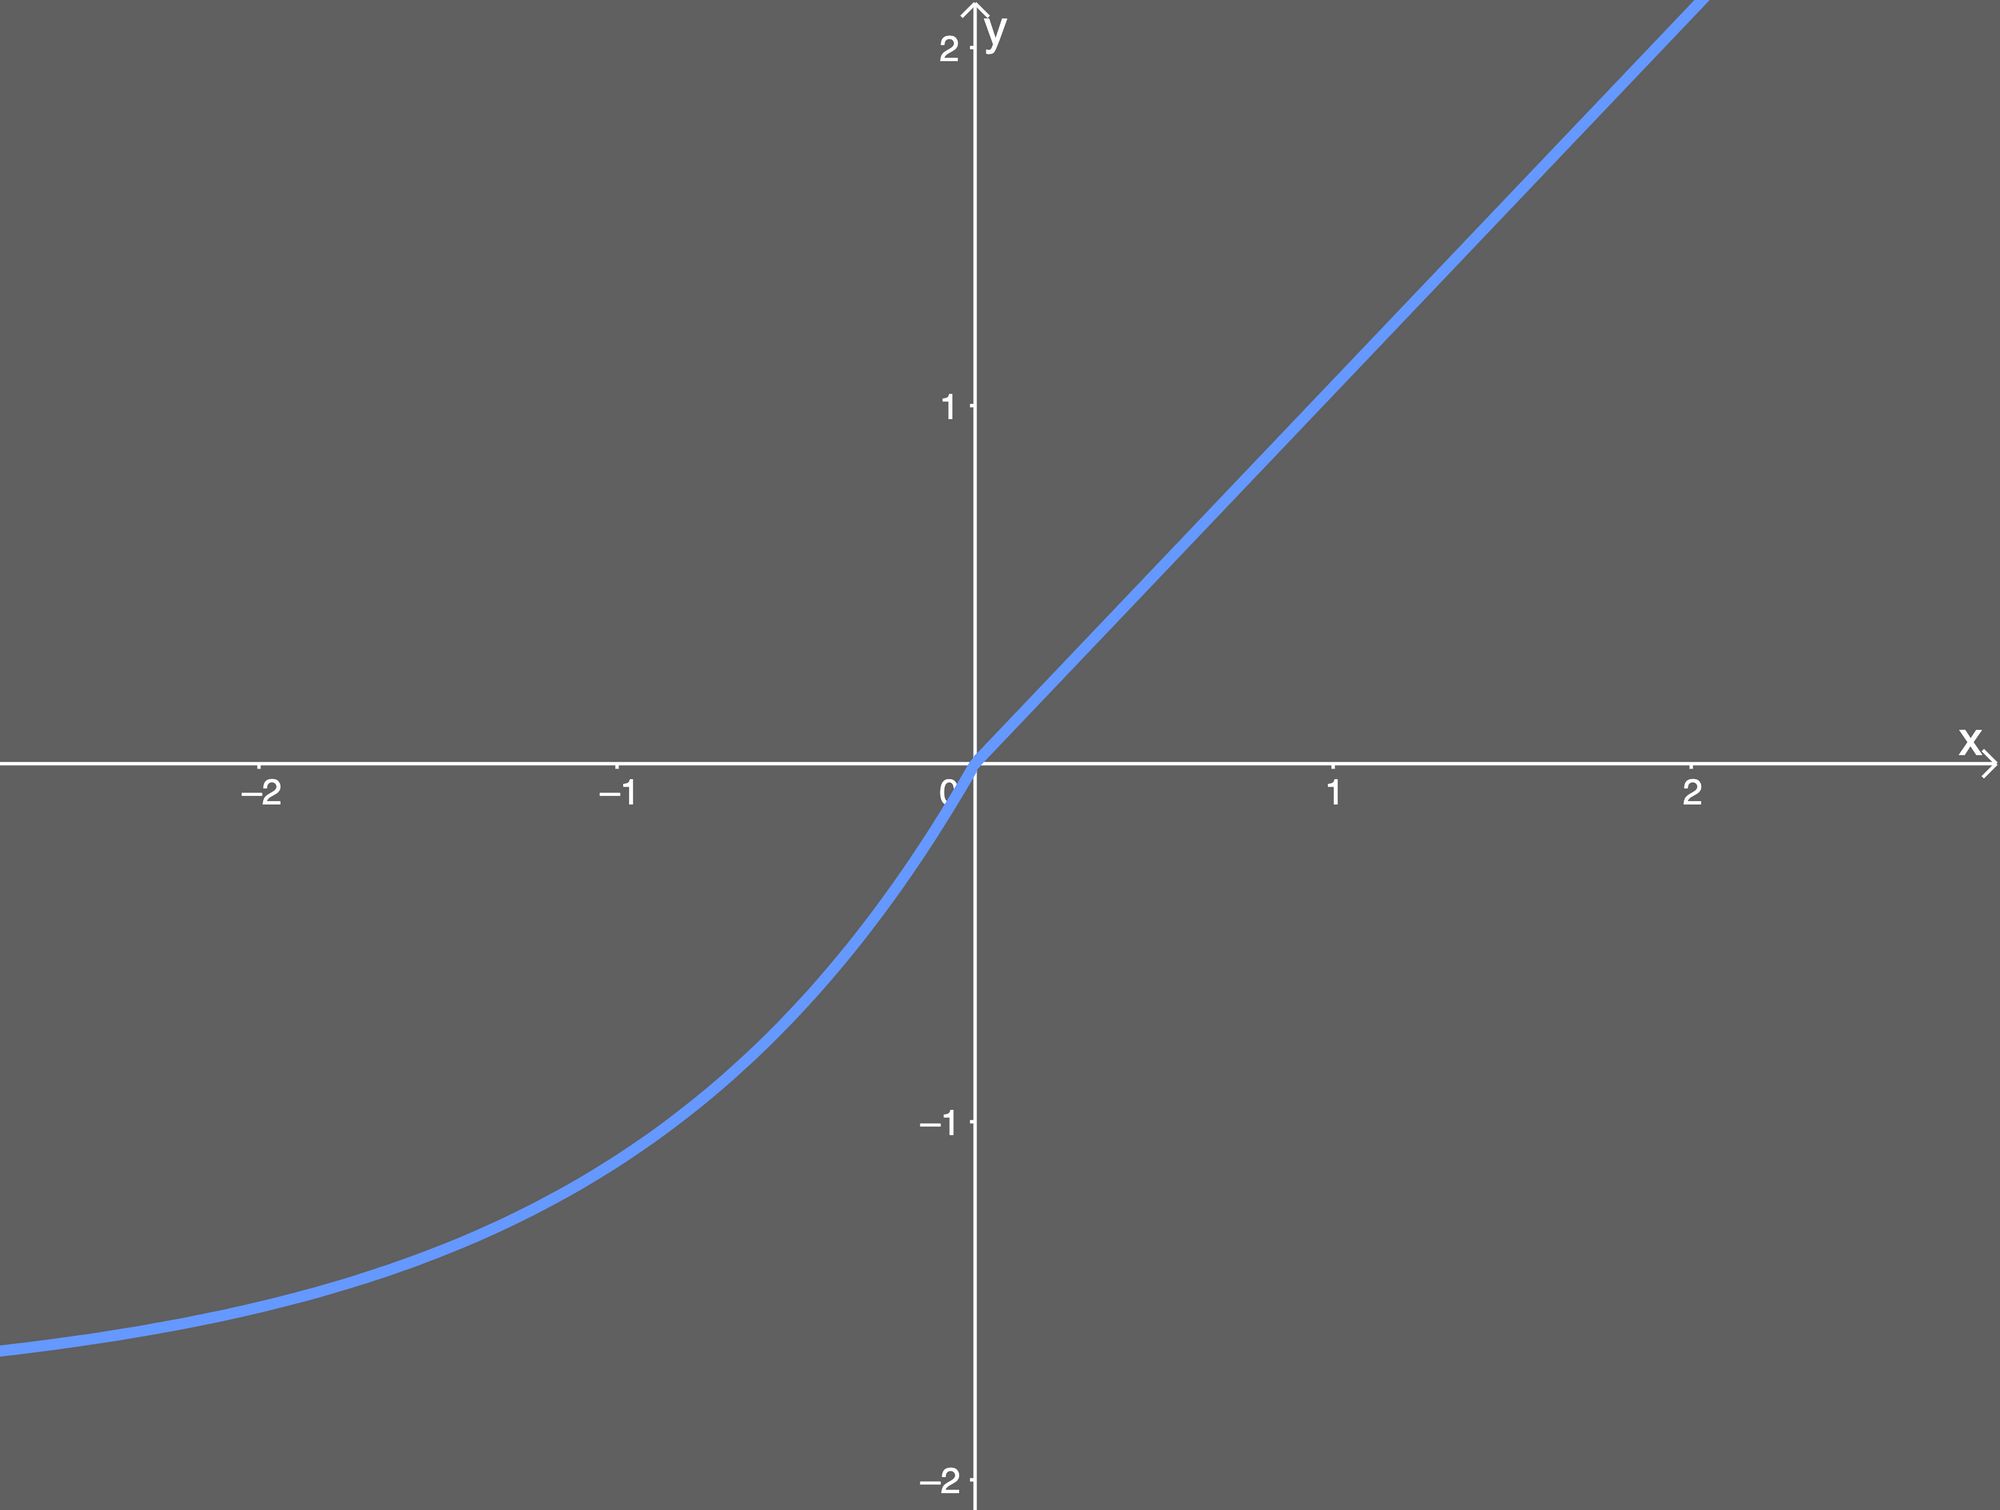 the selu activation function plotted